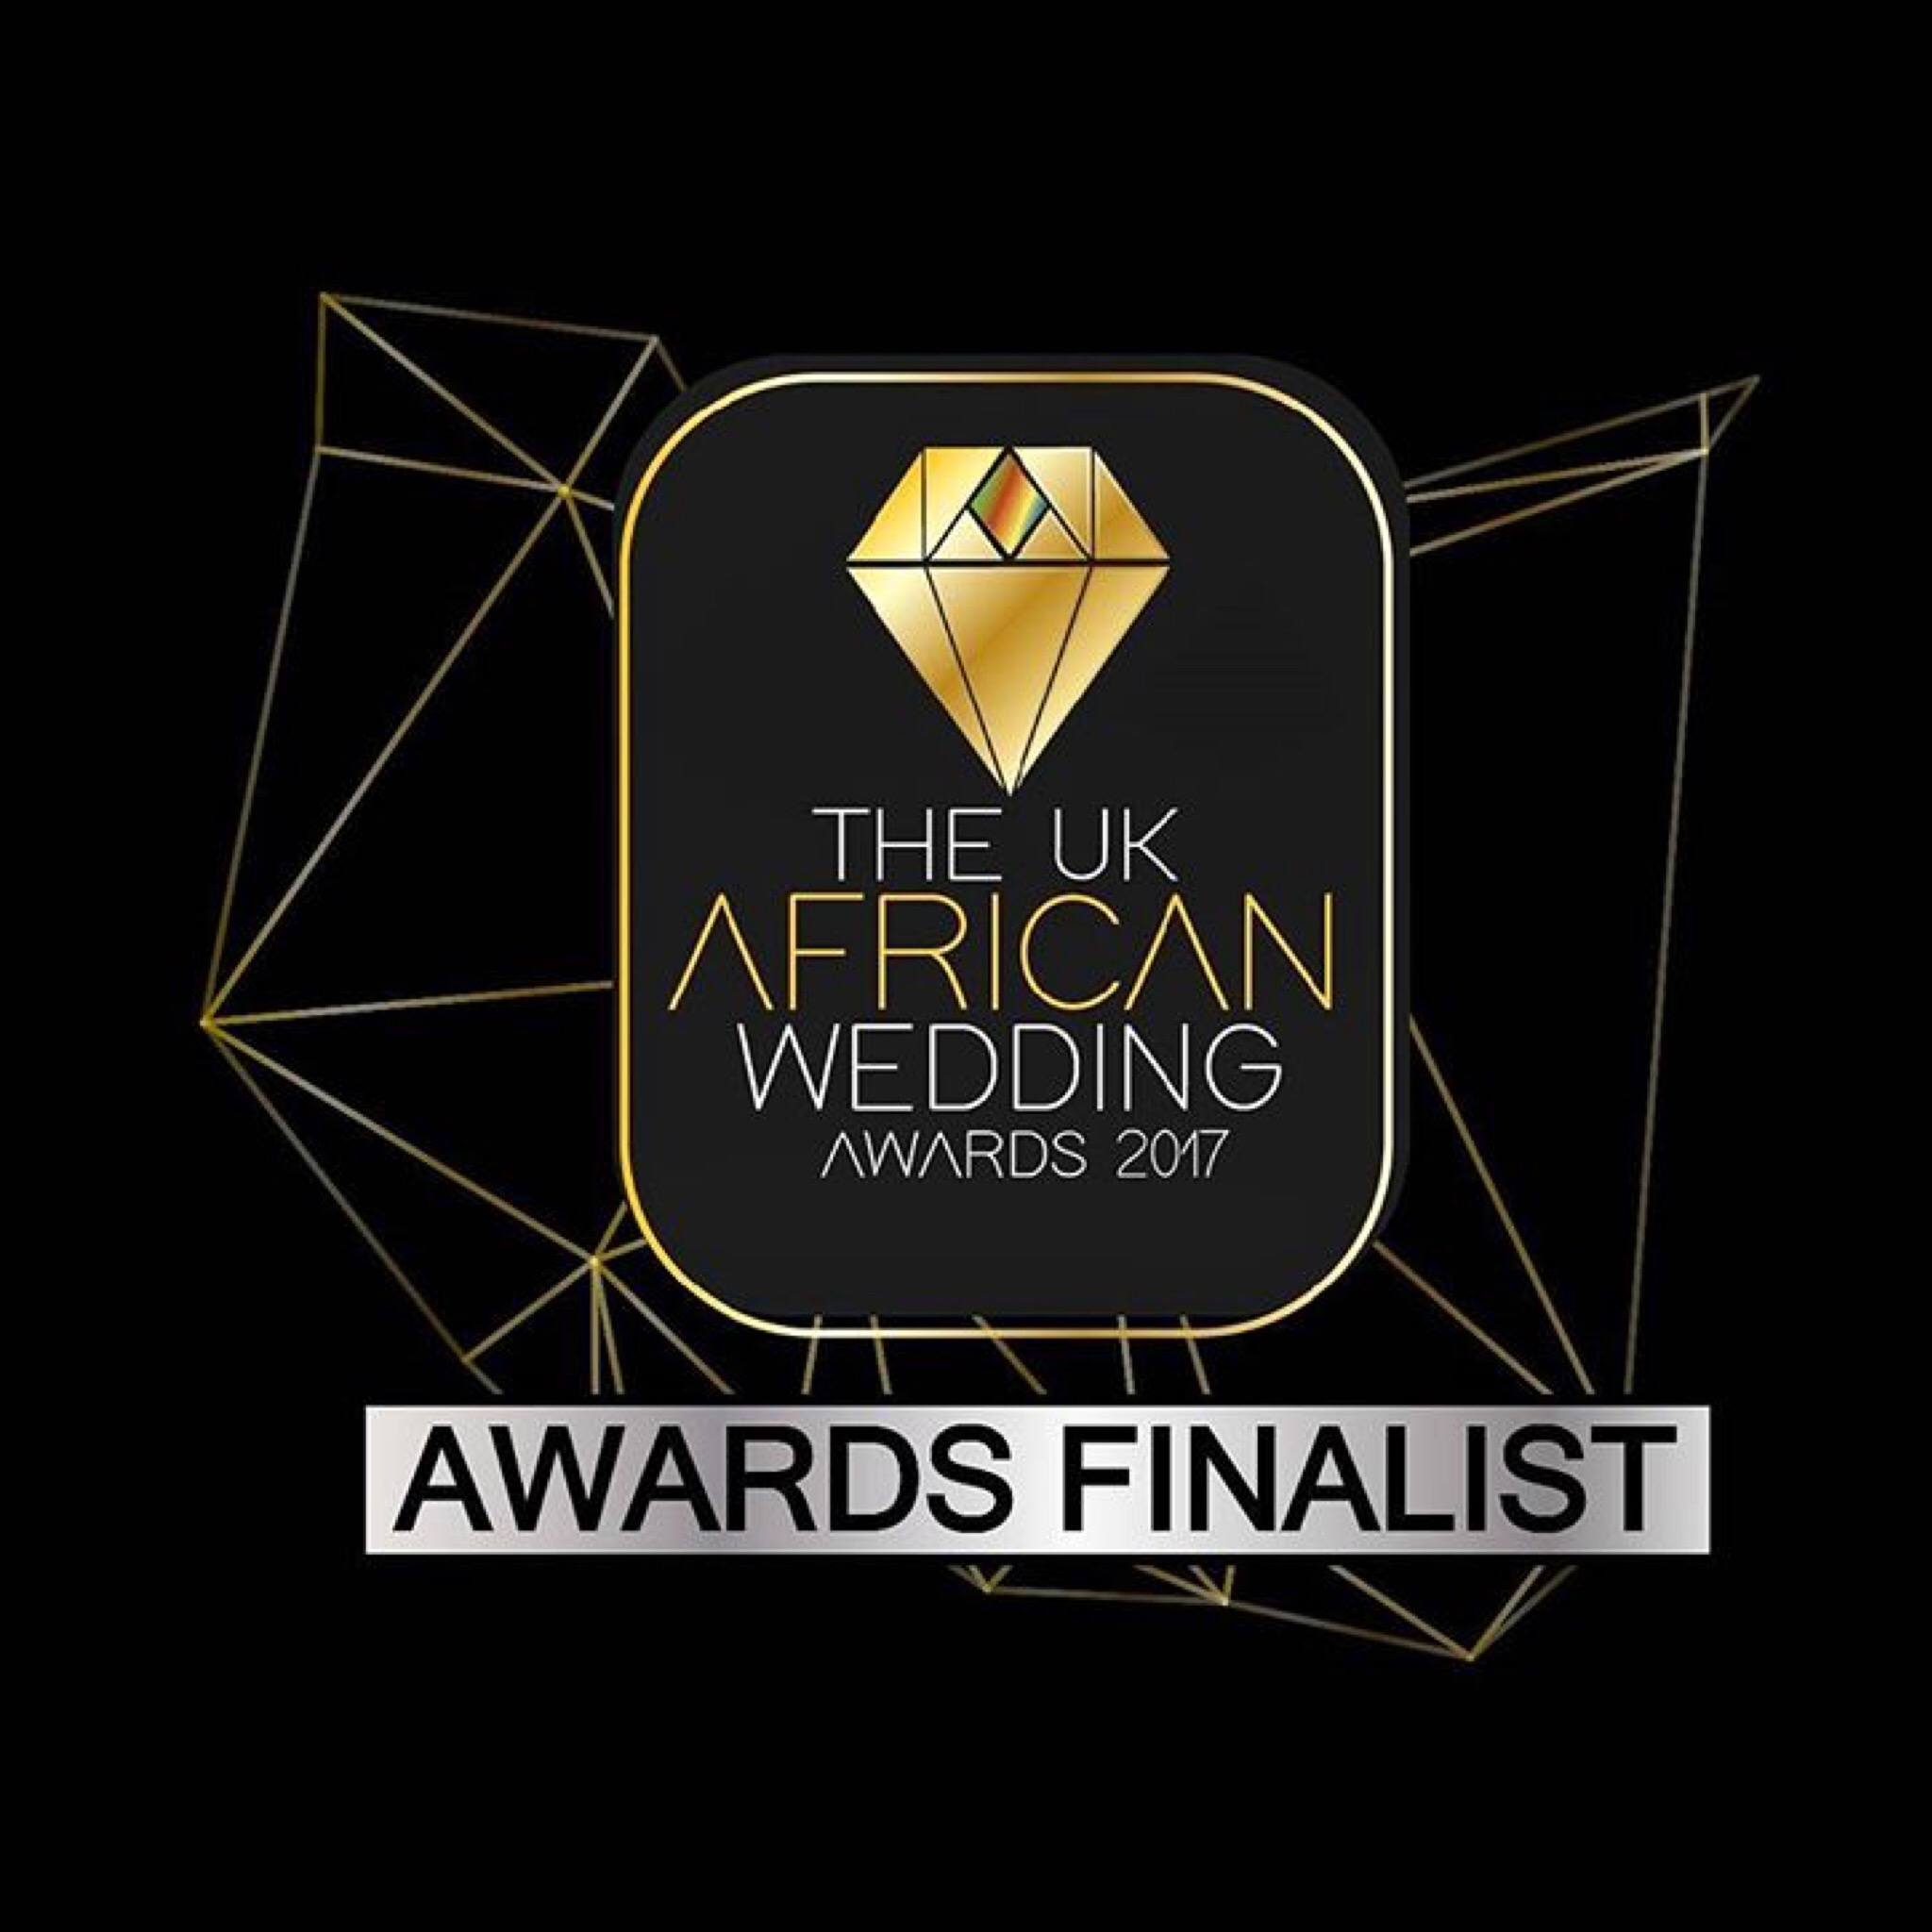 The Hunters Cocktails nominated for UK African Caribbean Wedding Awards for Drinks Category